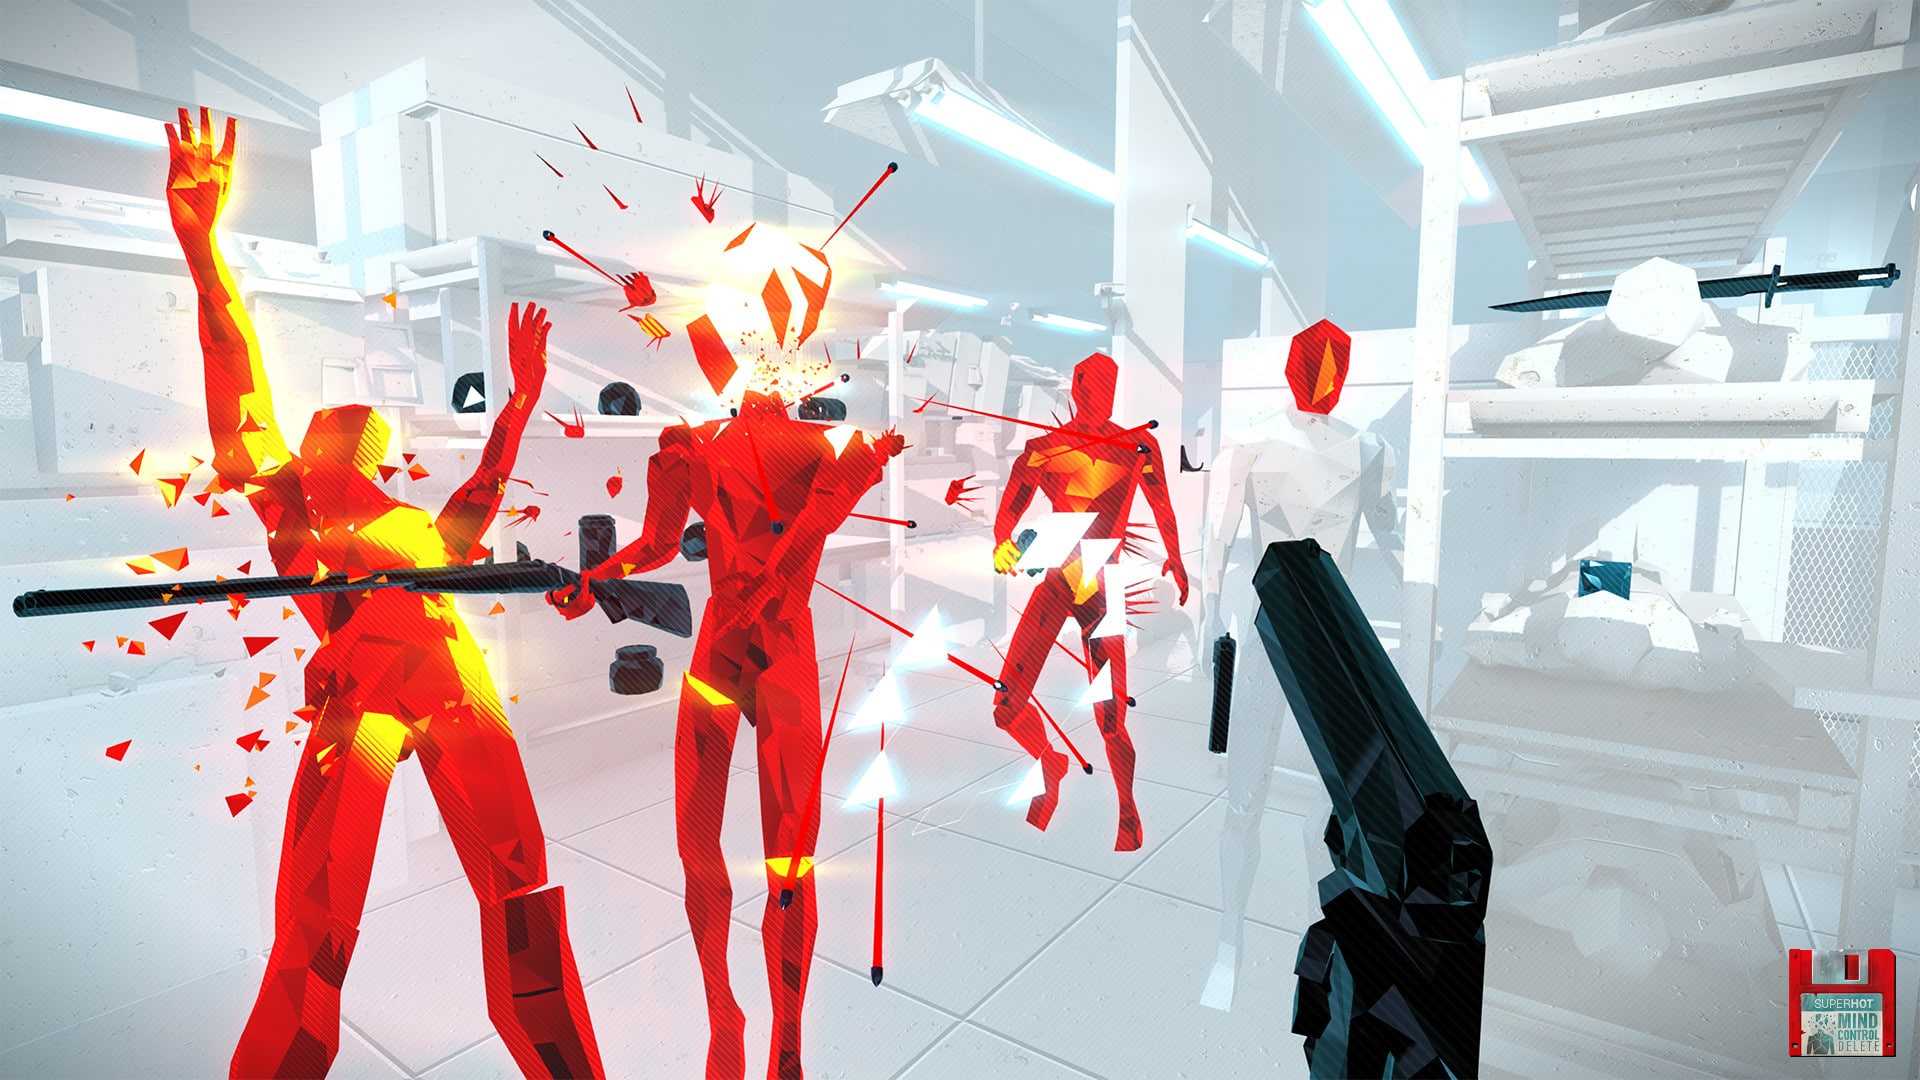 Superhot VR Superhot Team slow pace of games slower speed instead of ultra fast